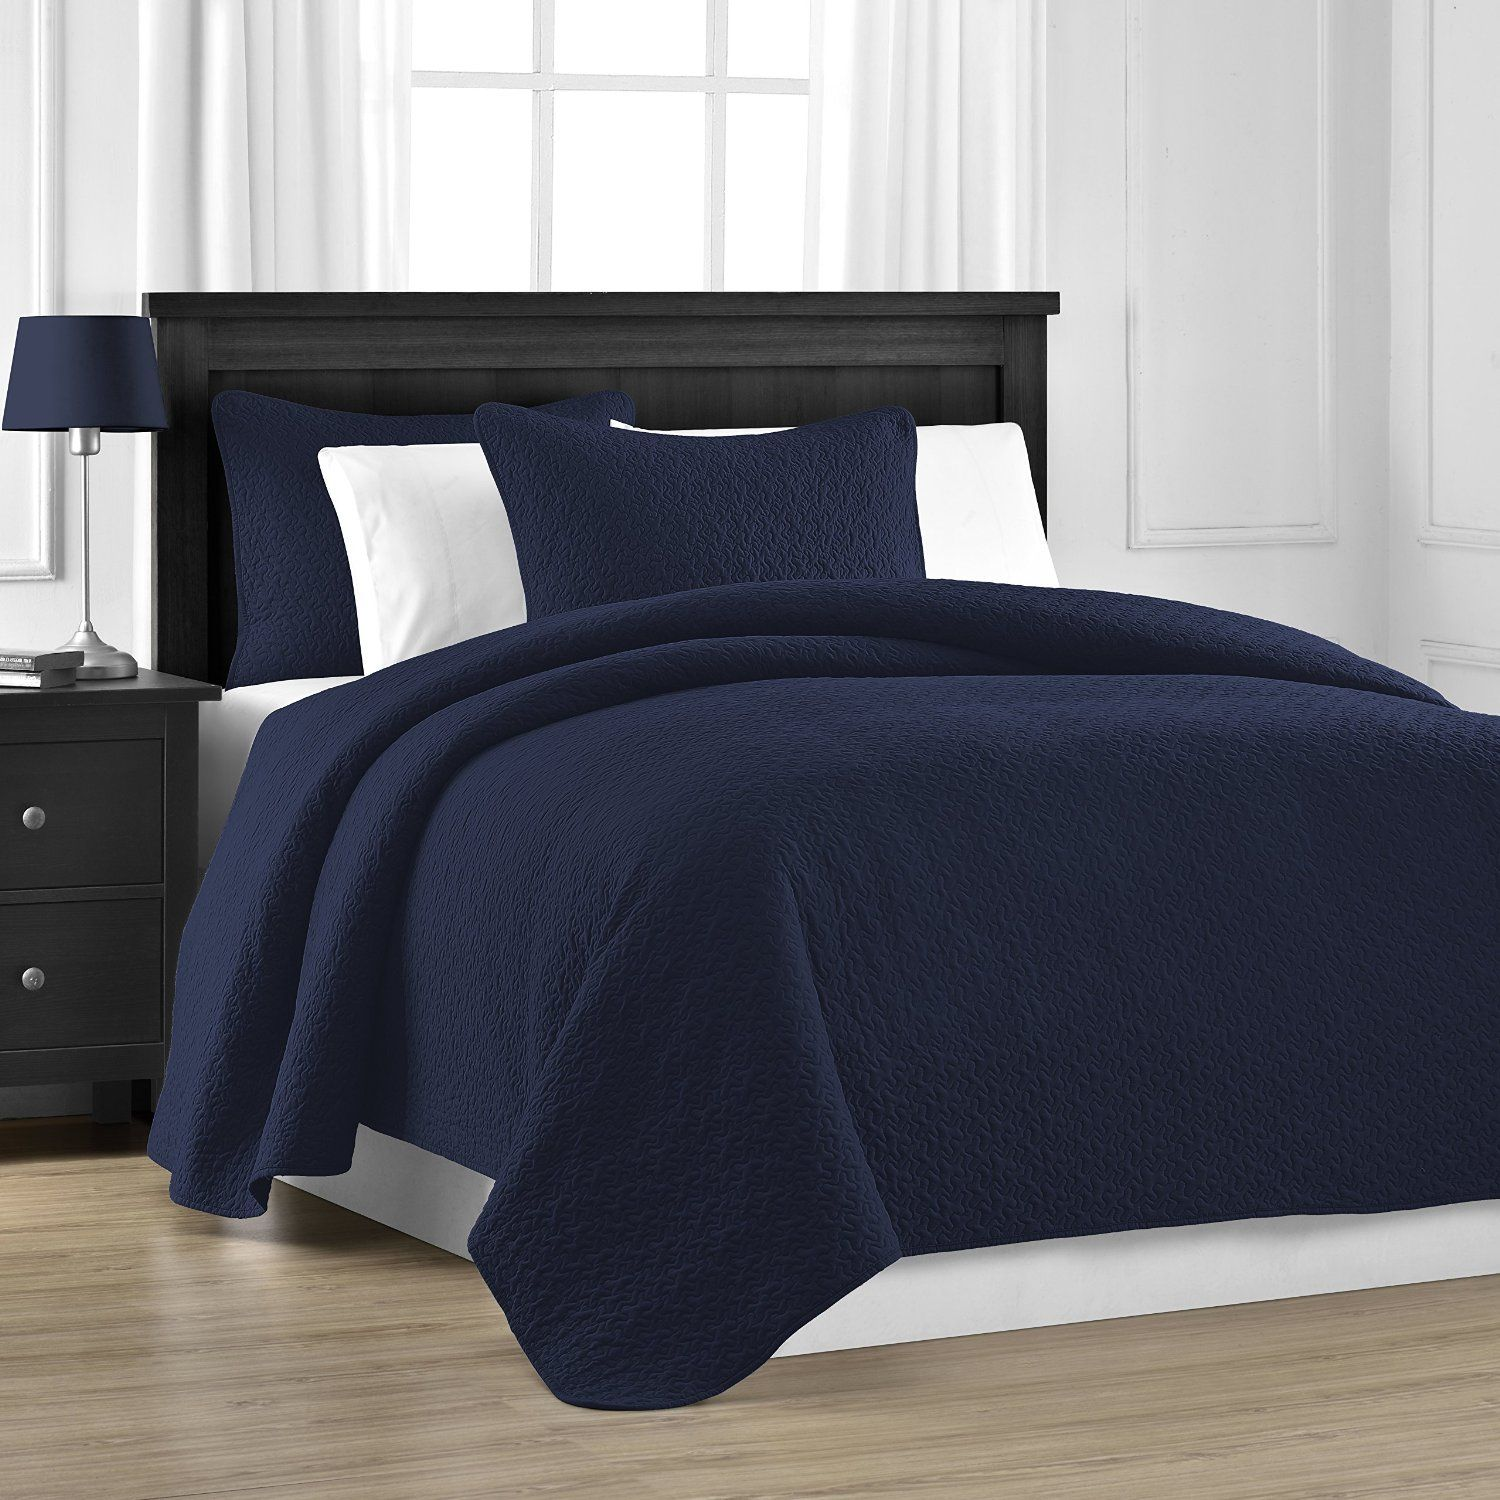 Bedding 3 Piece Cotton Filled Jigsaw Quilted Coverlet Set (Full/Queen, Navy